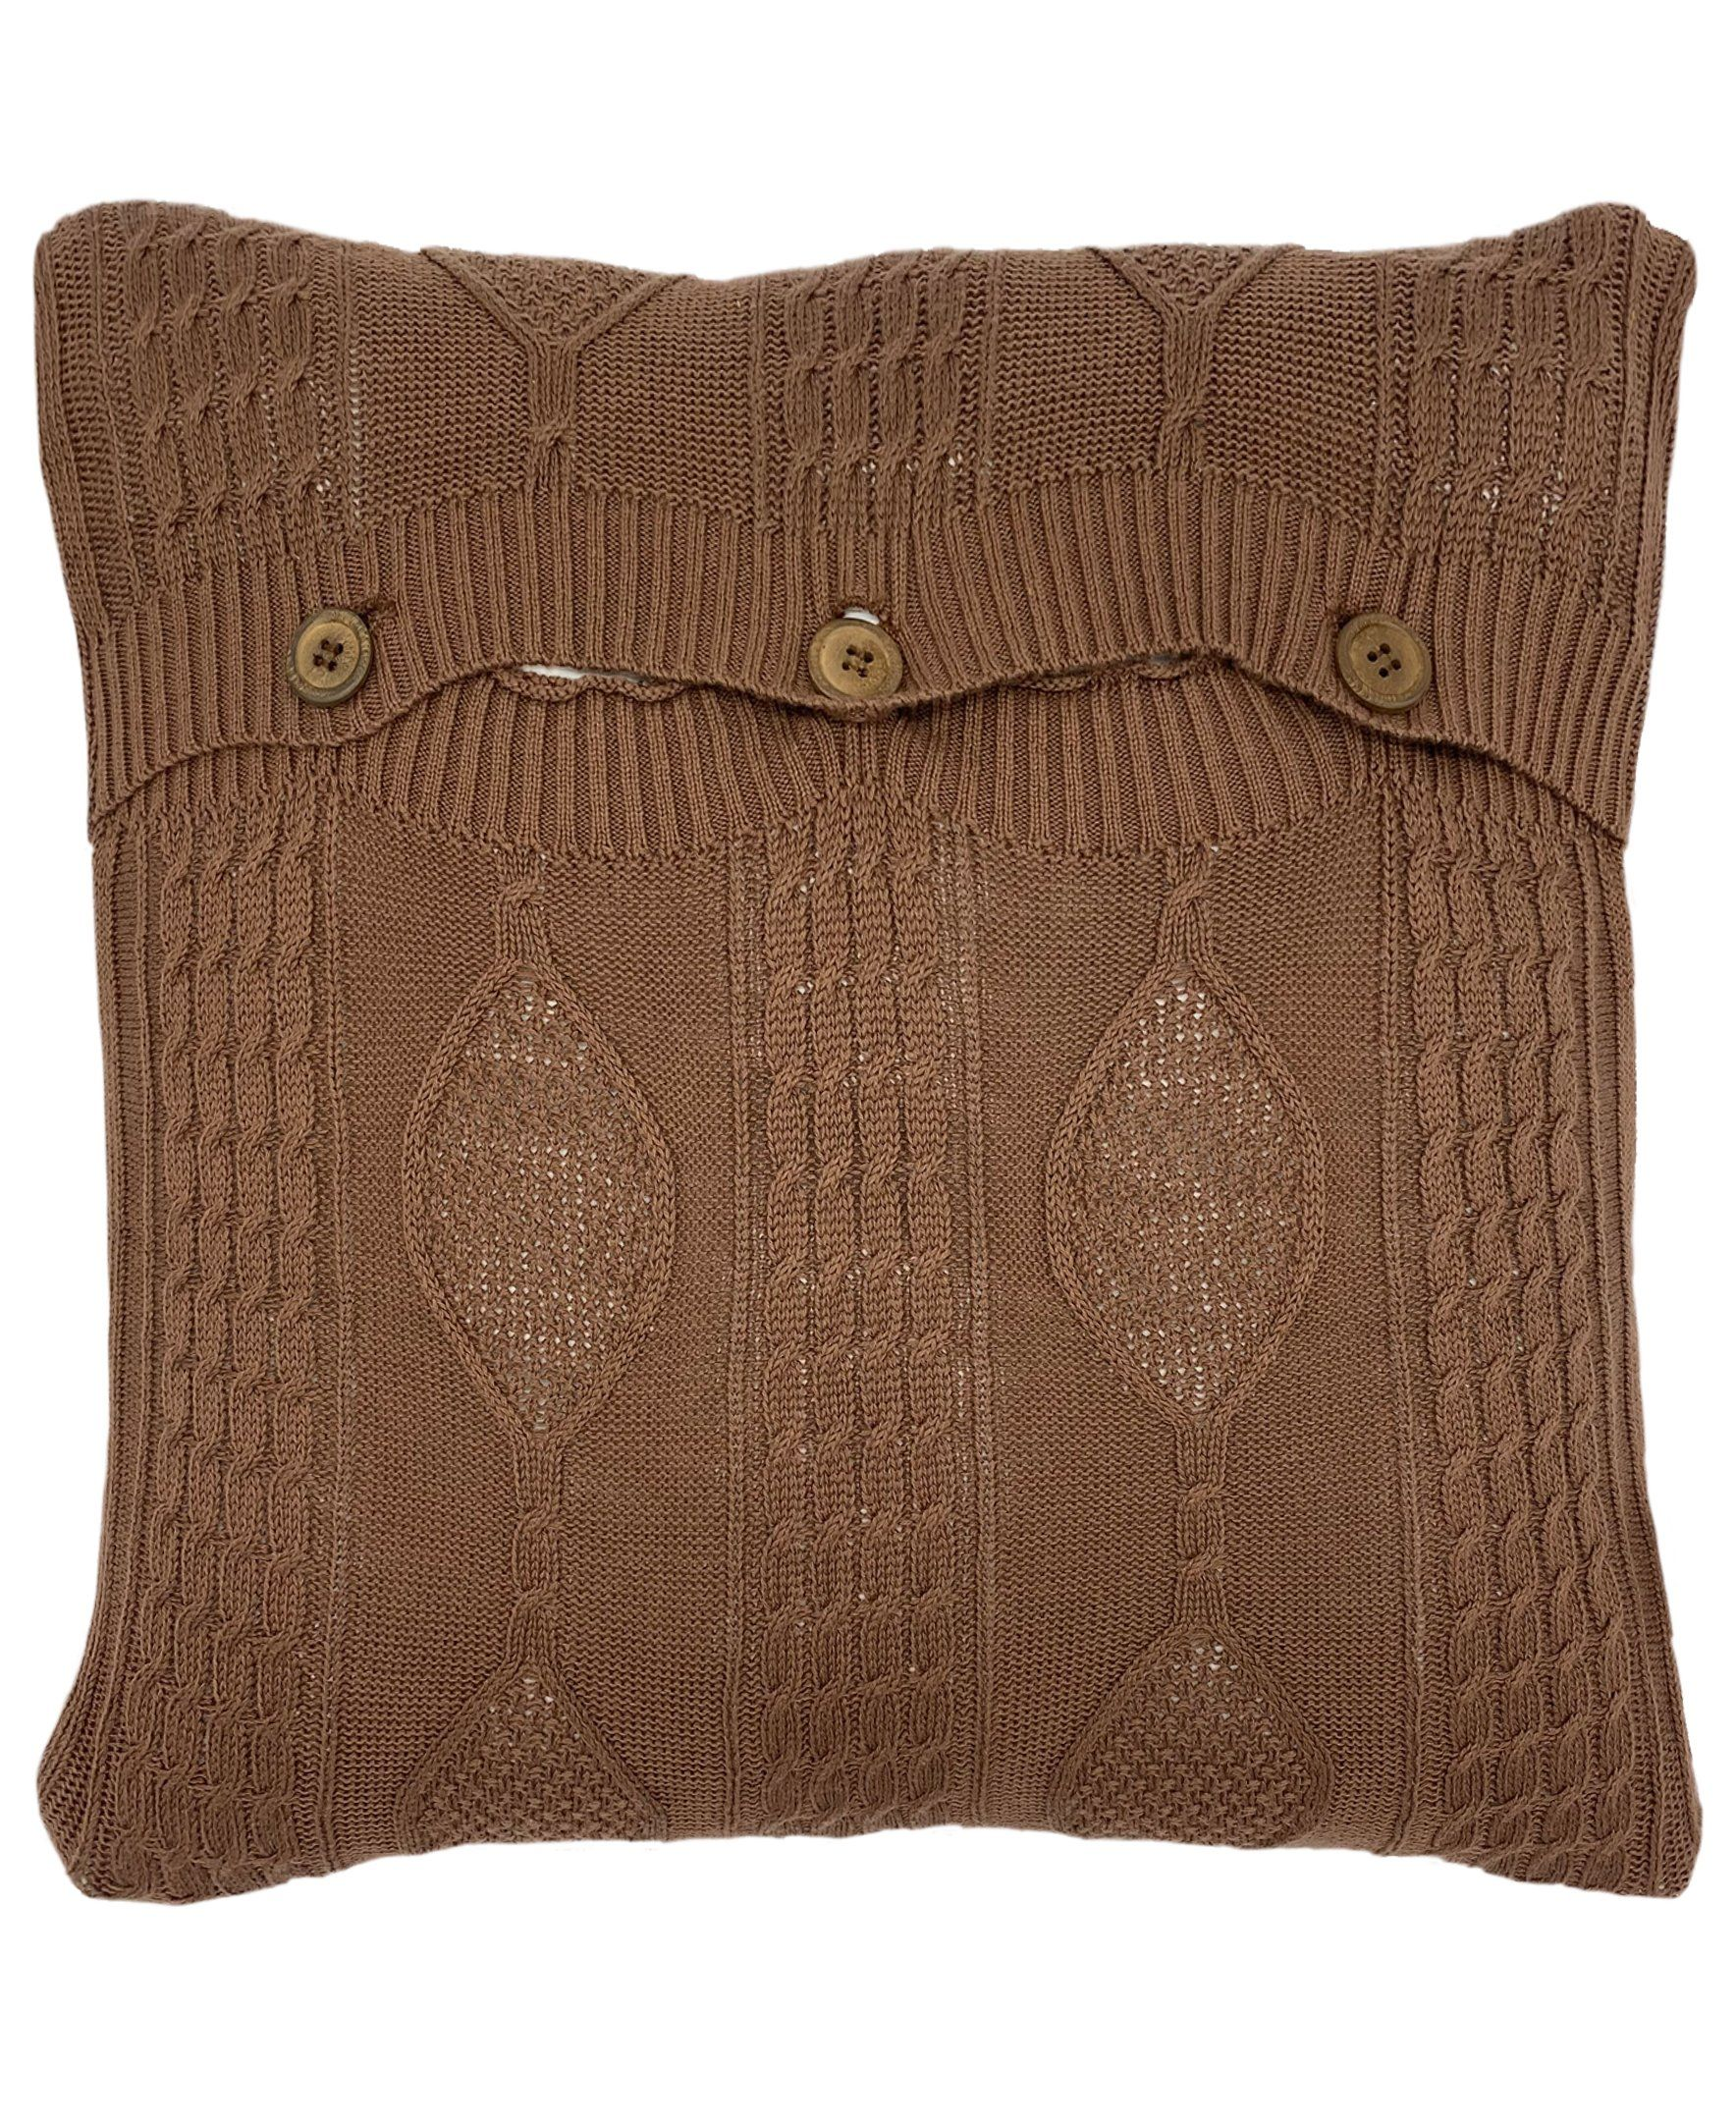 Photo of Cotton Diamond Cable Knit Pillow with 3 Button Closure, 18 X 18 – Brownie / 18X18 / PI-1098